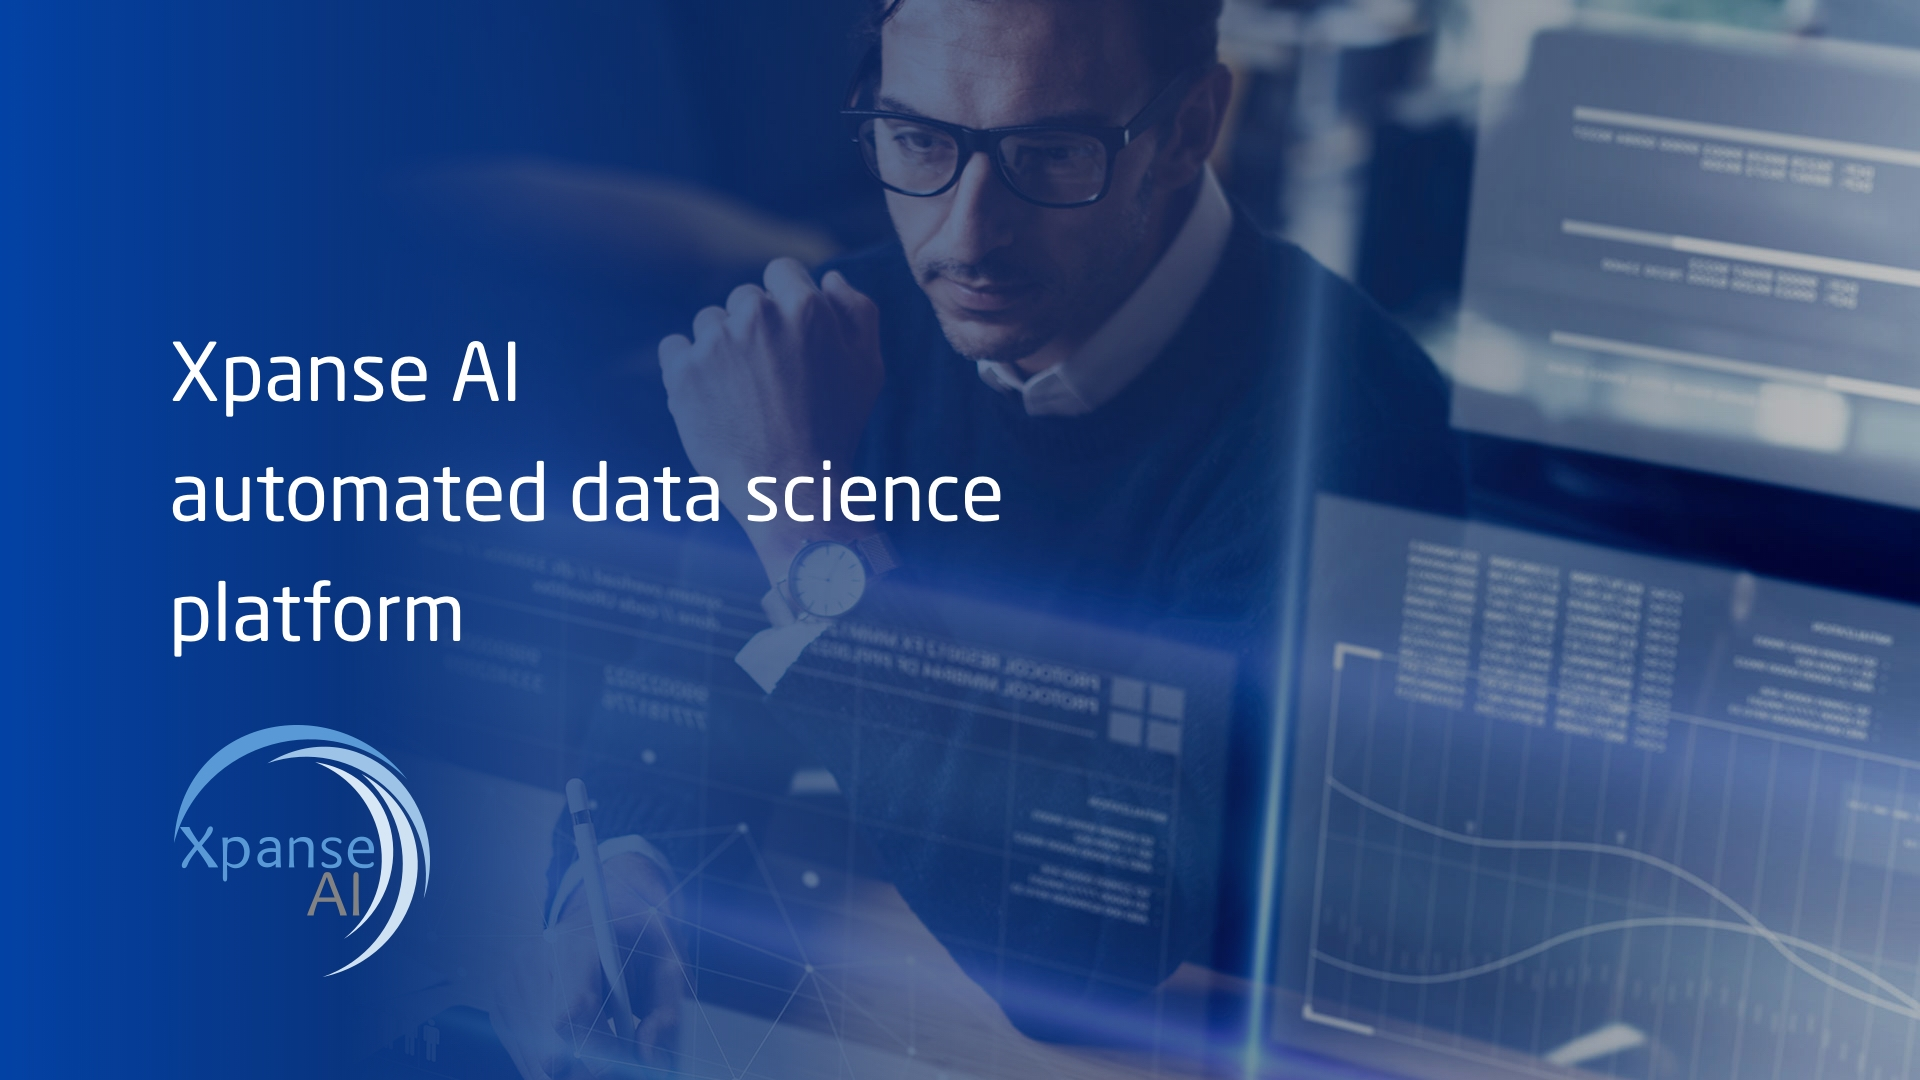 Xpanse AI - automated data science platform